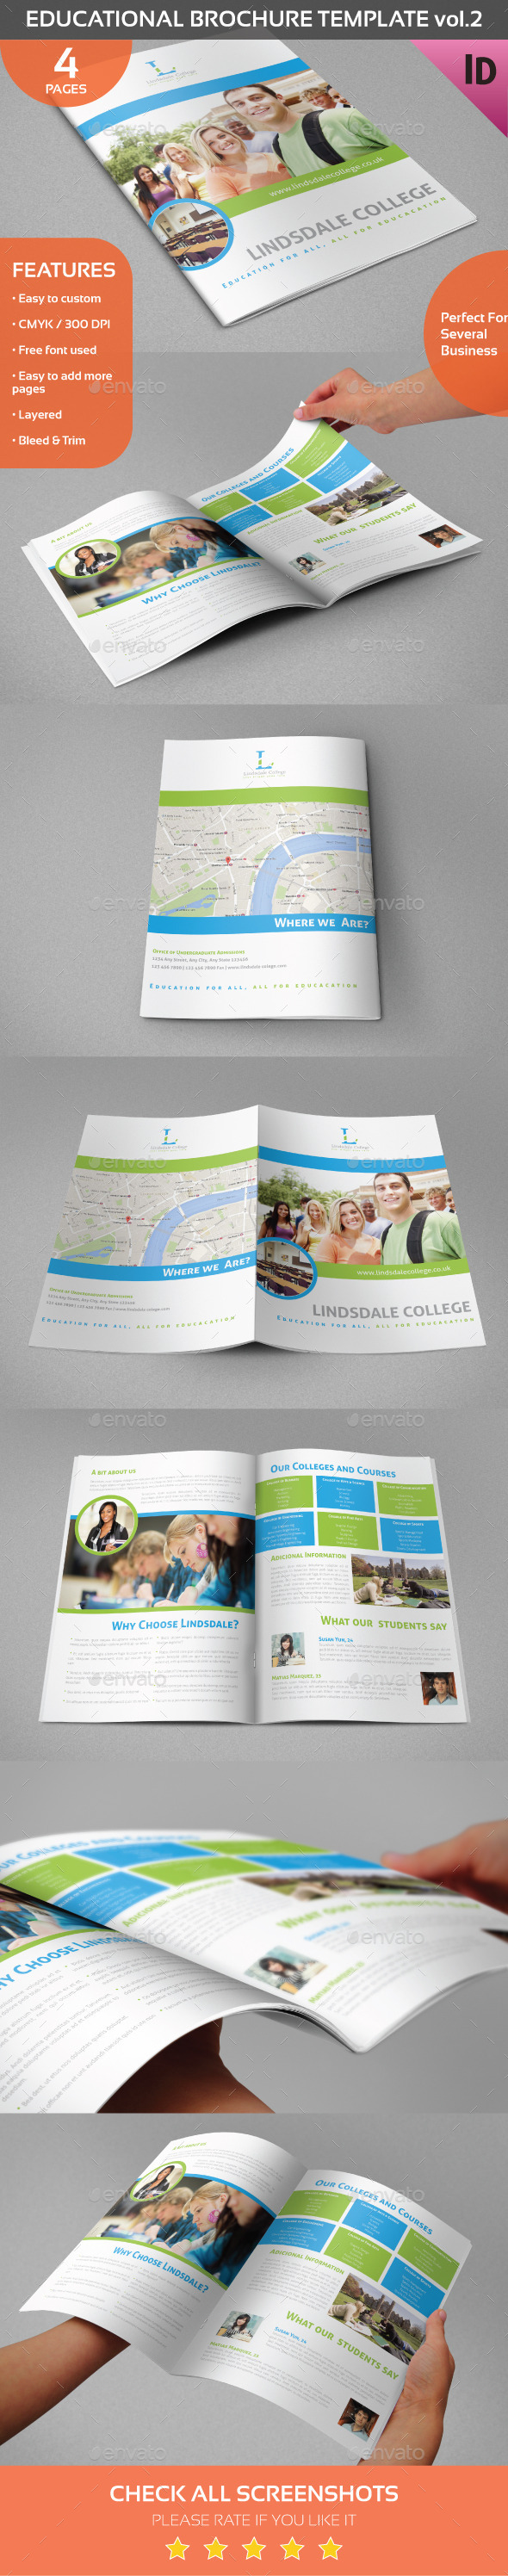 GraphicRiver Educational Brochure Template Vol.2 8959818